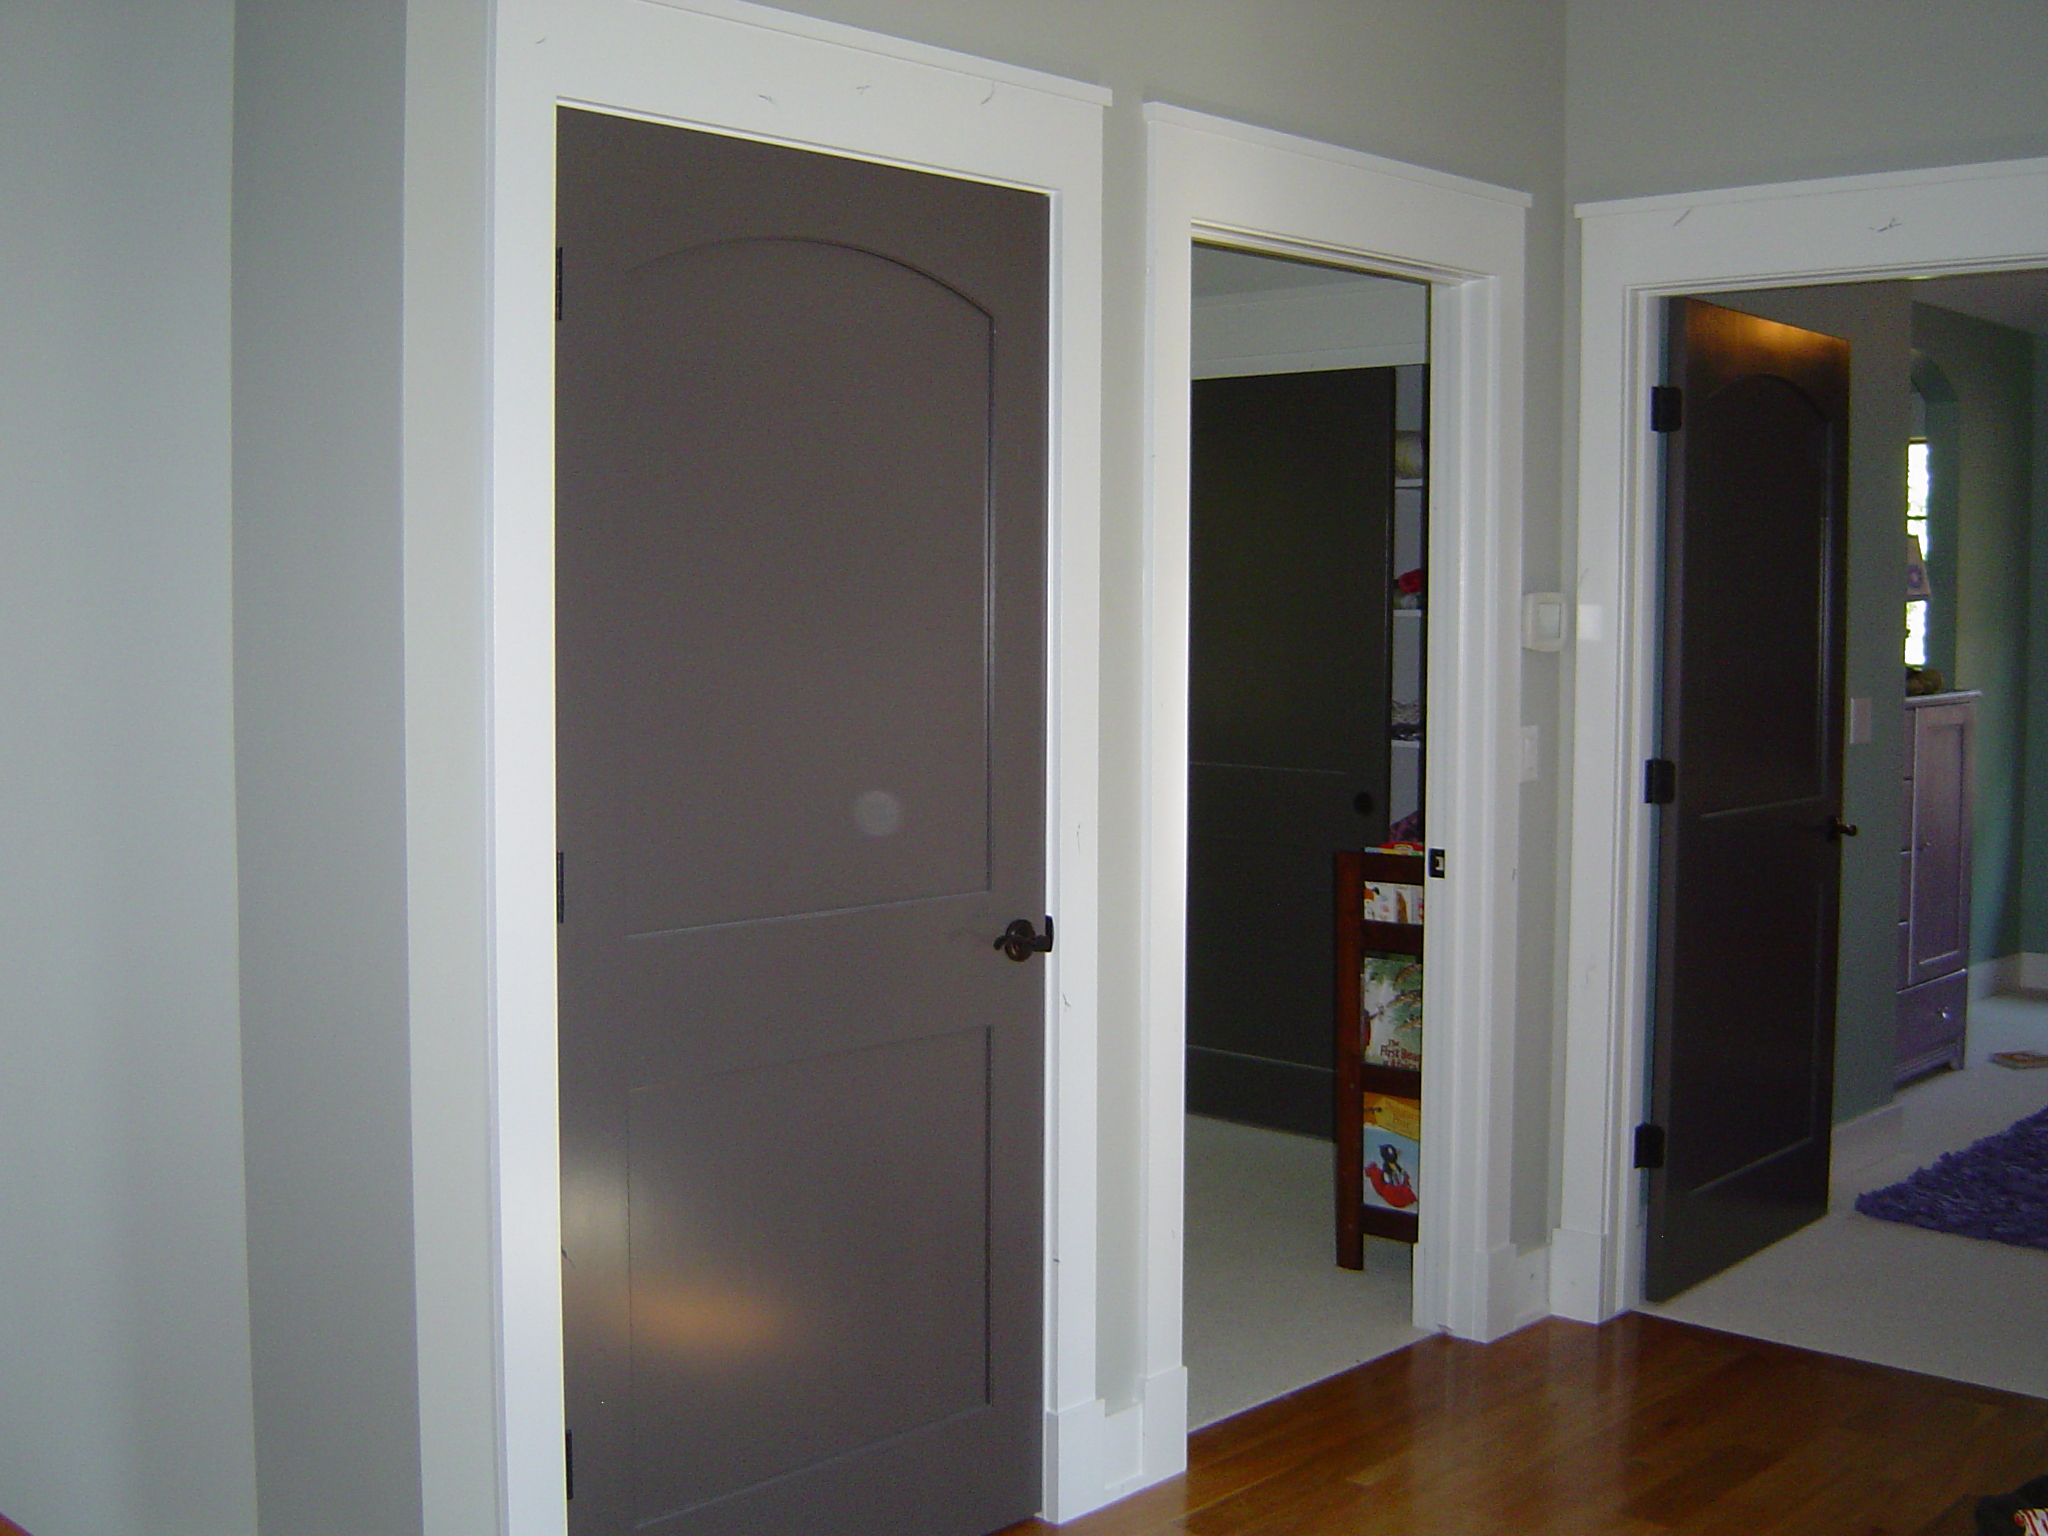 Painting doors and trim mafiamedia for Cost to paint interior doors and trim